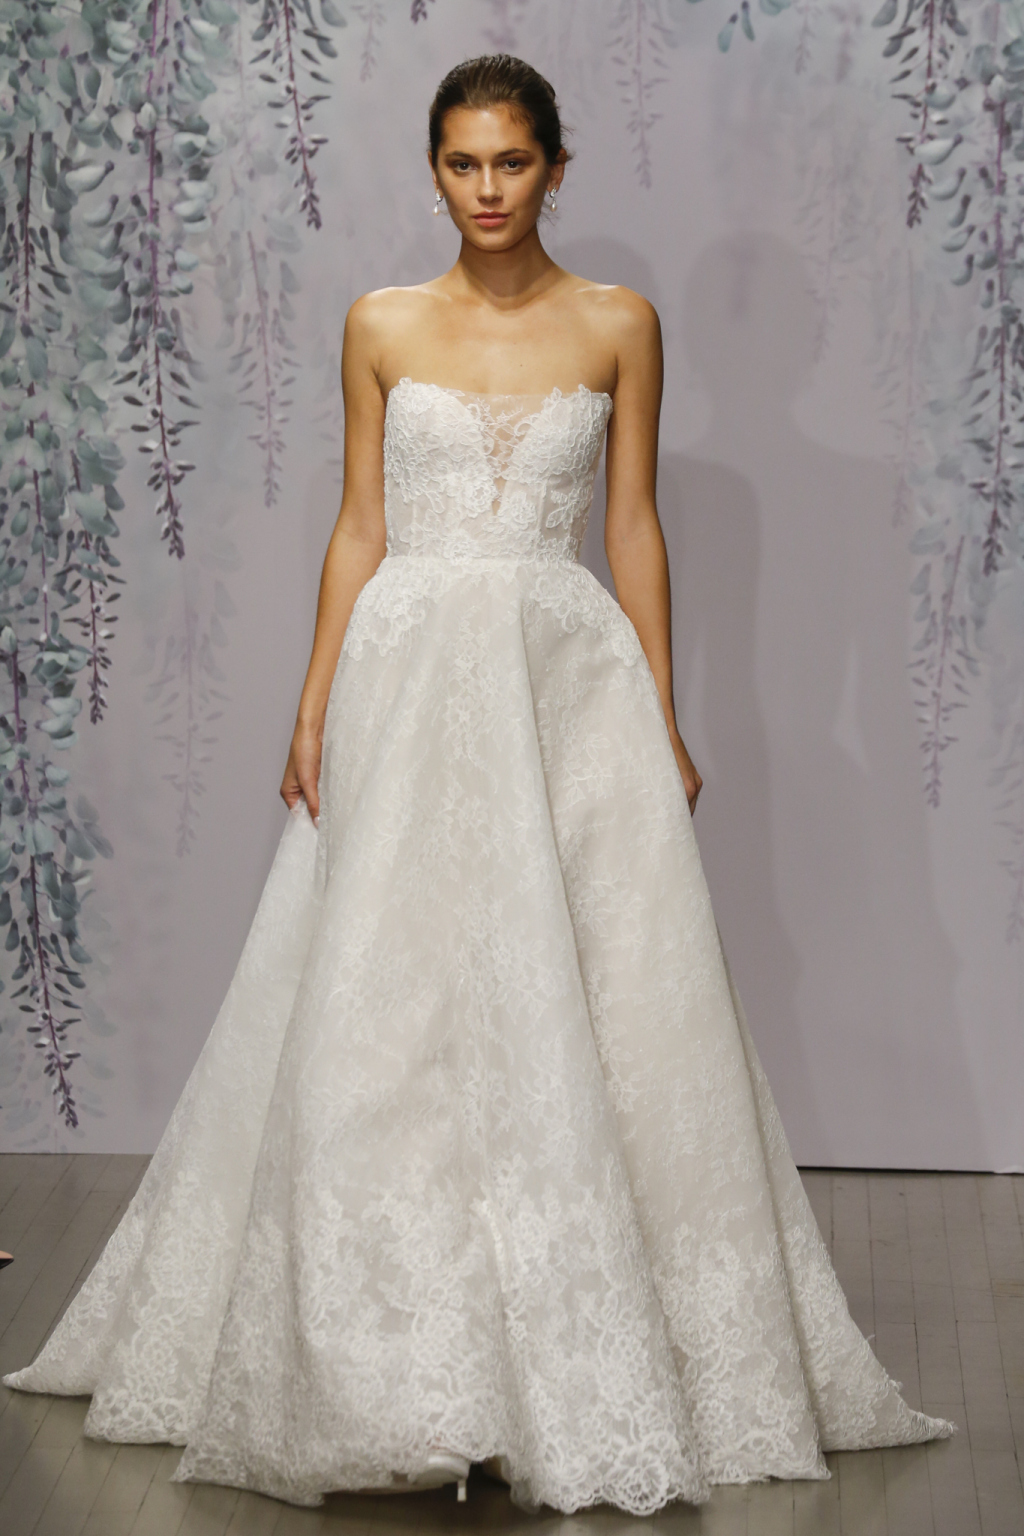 Wedding Gowns New York Stores : Monique lhuillier fall wedding dress collection